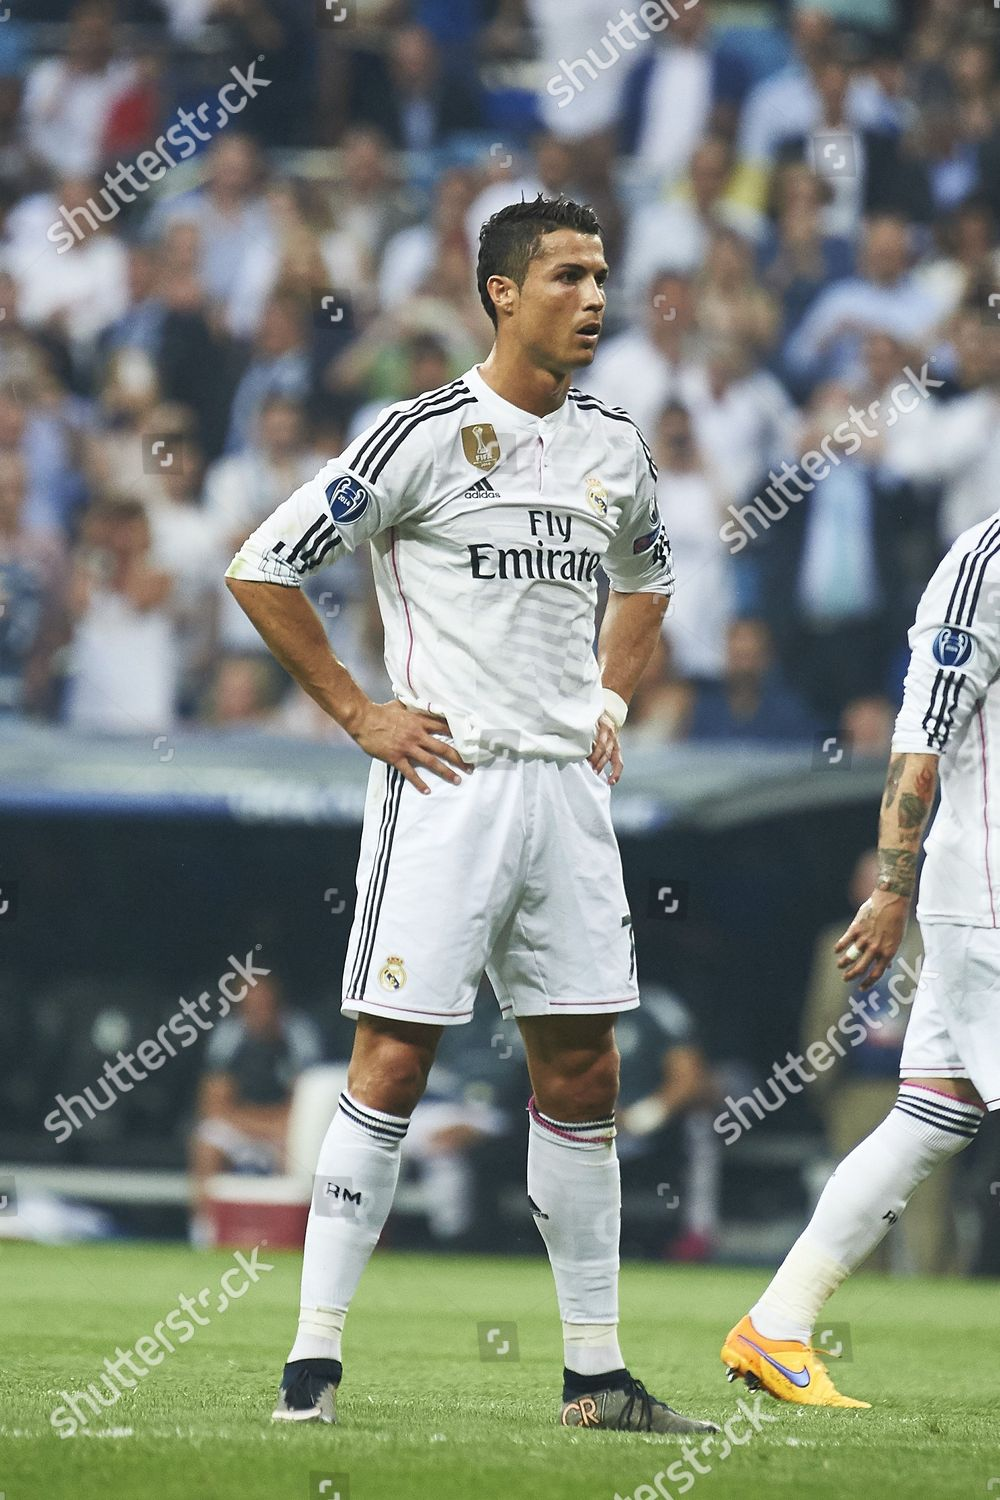 Cristiano Ronaldo Real Madrid Fc Action During Editorial Stock Photo Stock Image Shutterstock